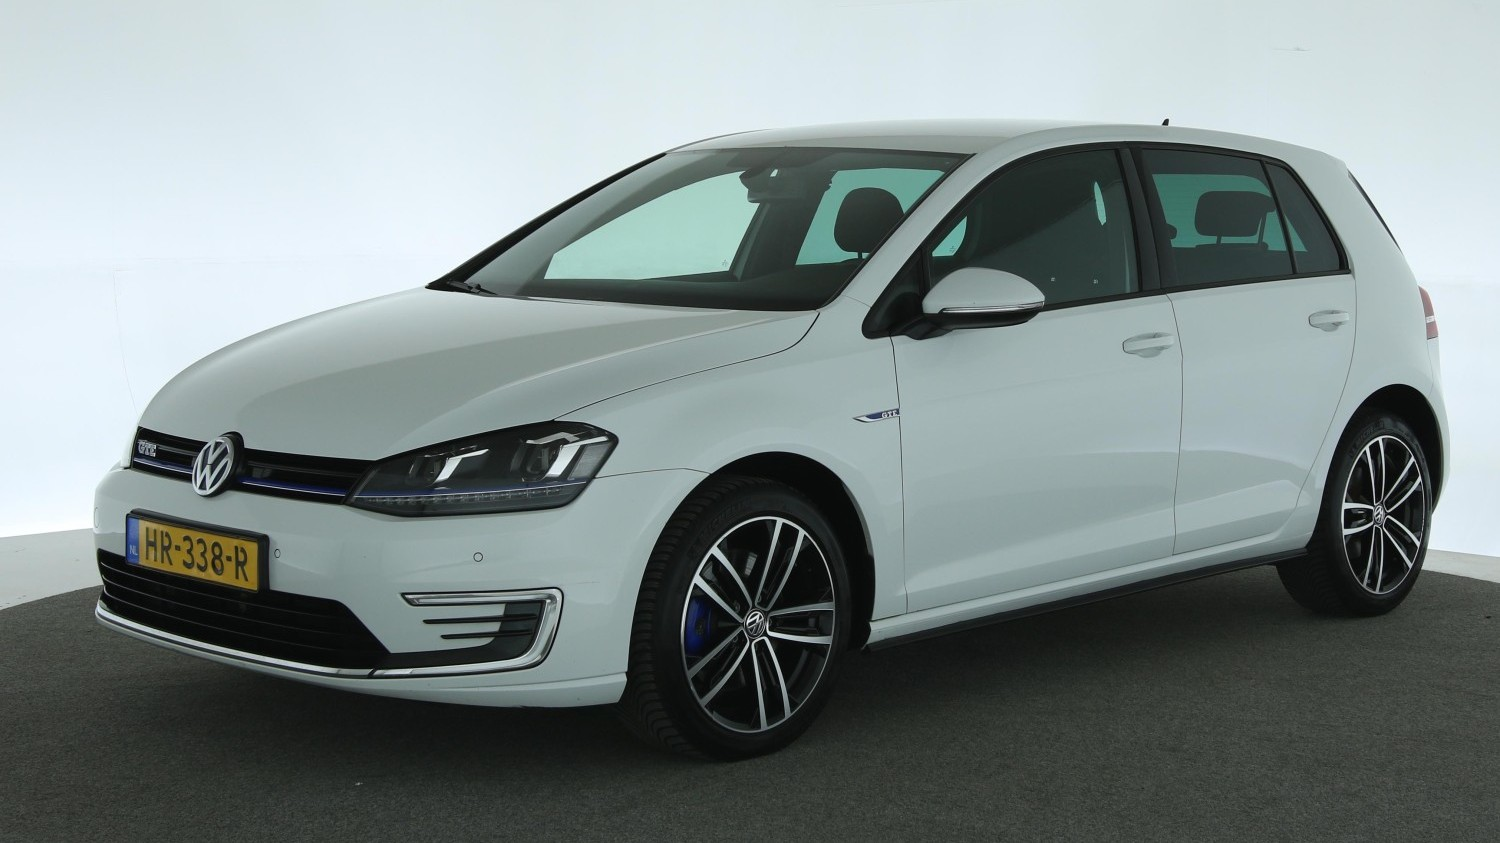 Volkswagen Golf Hatchback 2015 HR-338-R 1